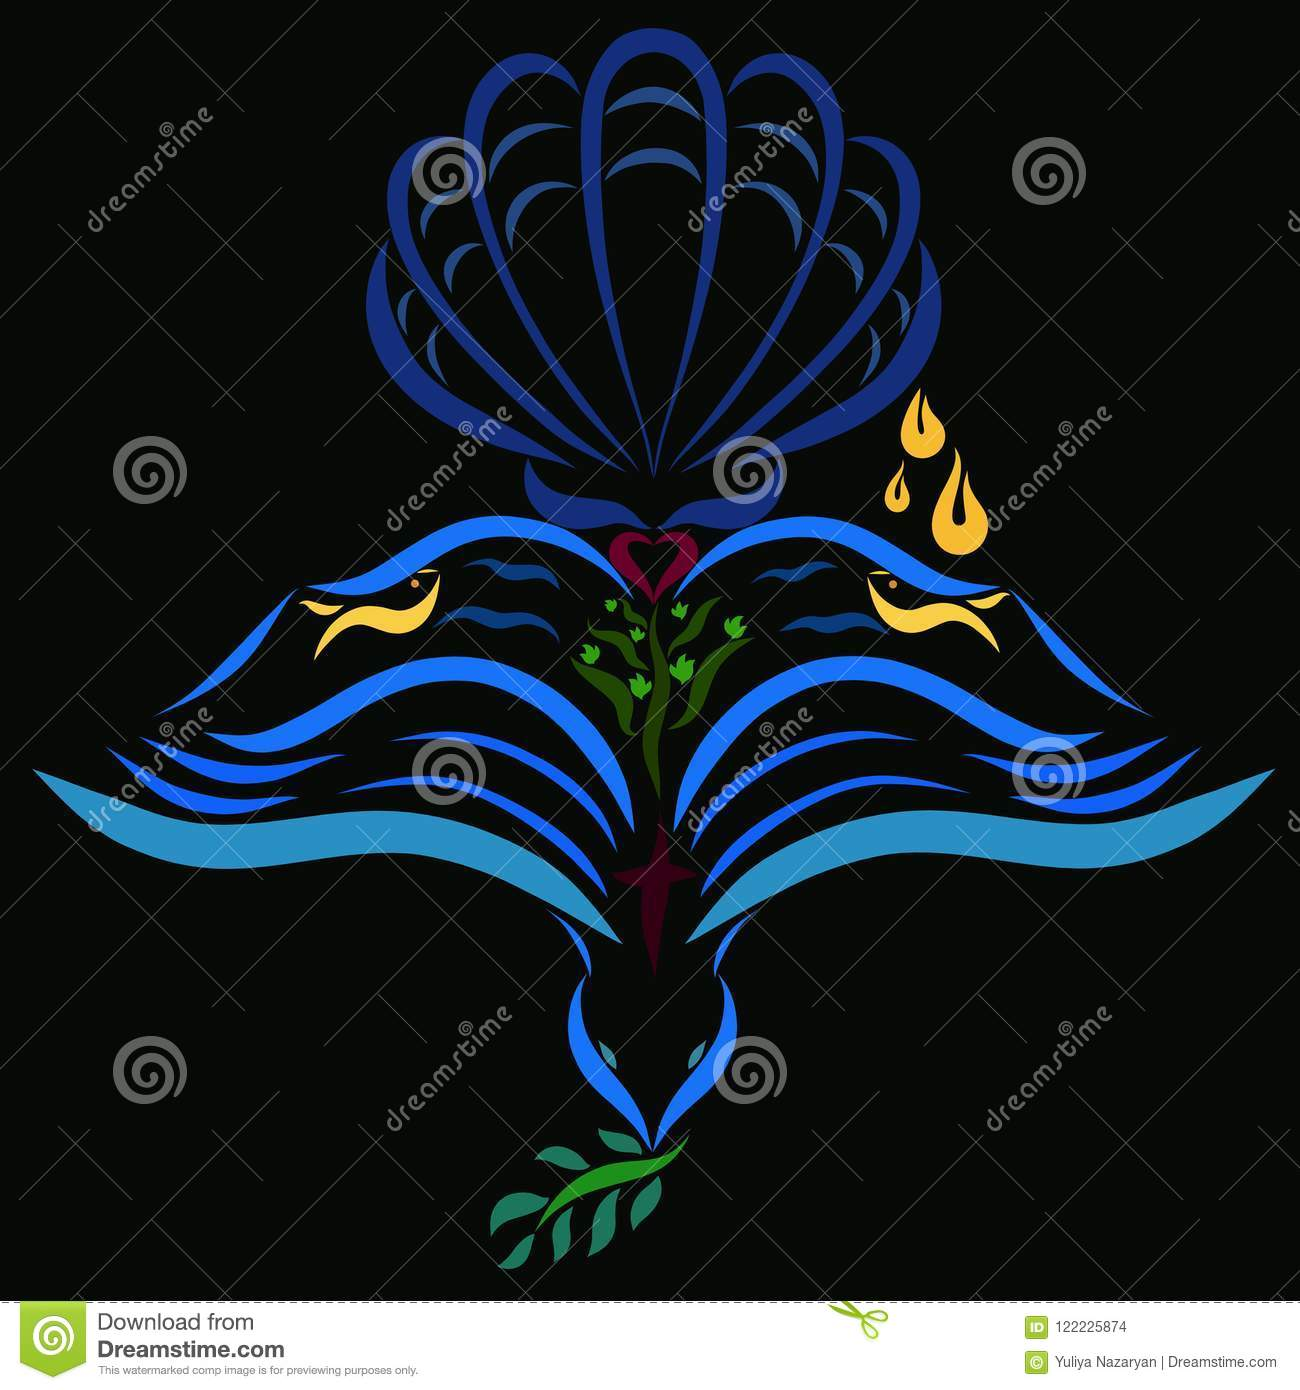 Christian Symbols Pattern On A Black Background The Bible And